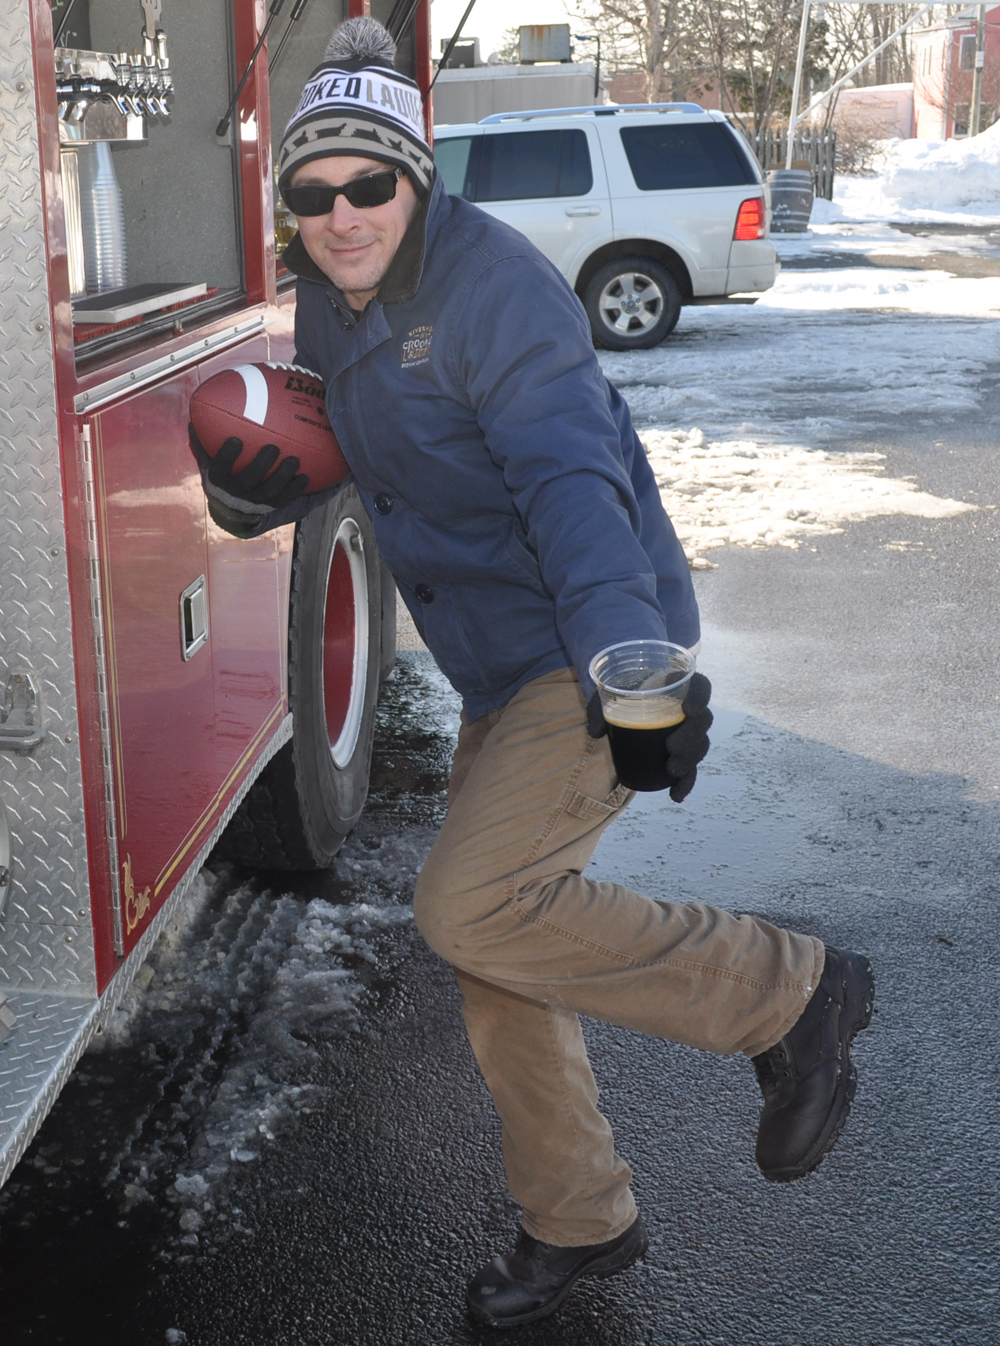 Nate Payne of Crooked Ladder Brewing Company strikes the Heisman pose ... or something like it.